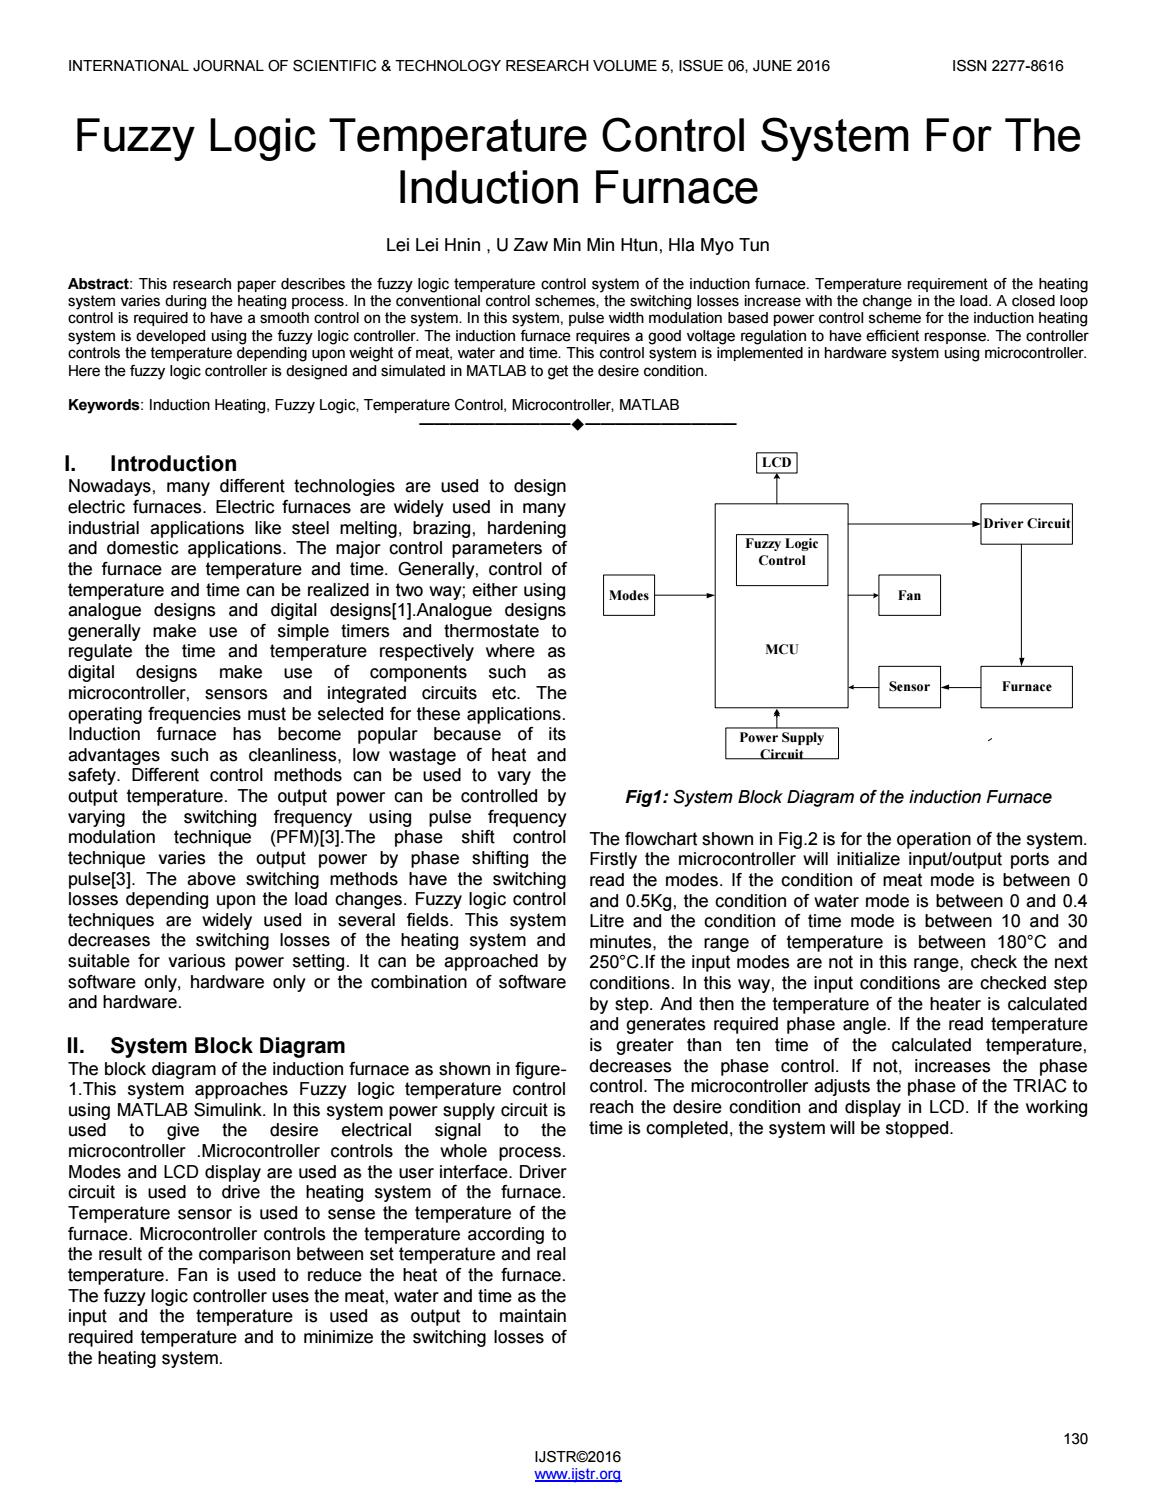 Fuzzy logic temperature control system for the induction furnace by